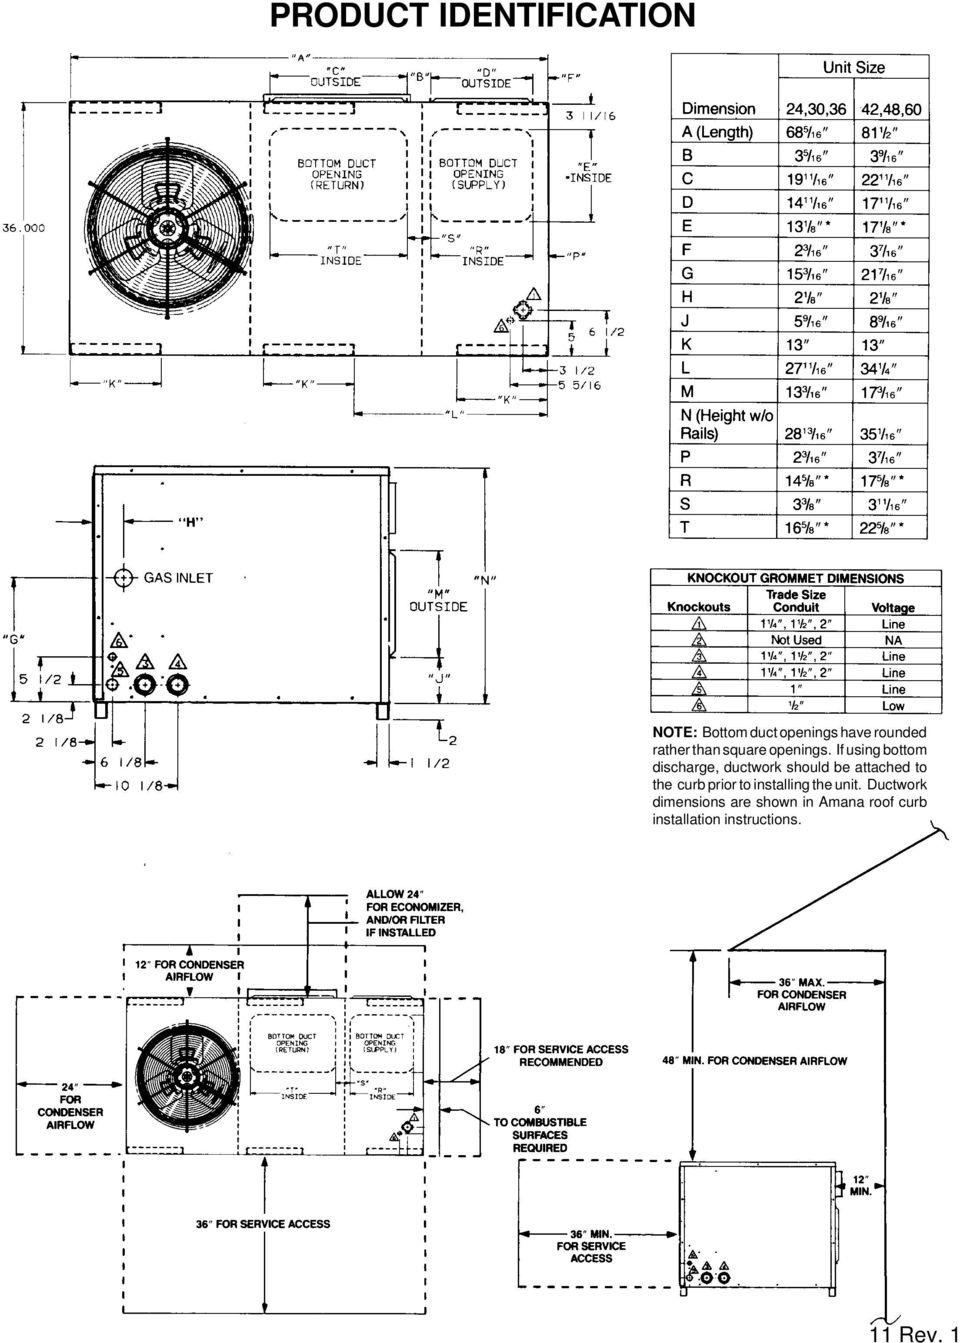 Package Cooling Heat Pump Gas Units Pdf Amana Condensing Unit Wiring Diagram If Using Bottom Discharge Ductwork Should Be Attached To The Curb